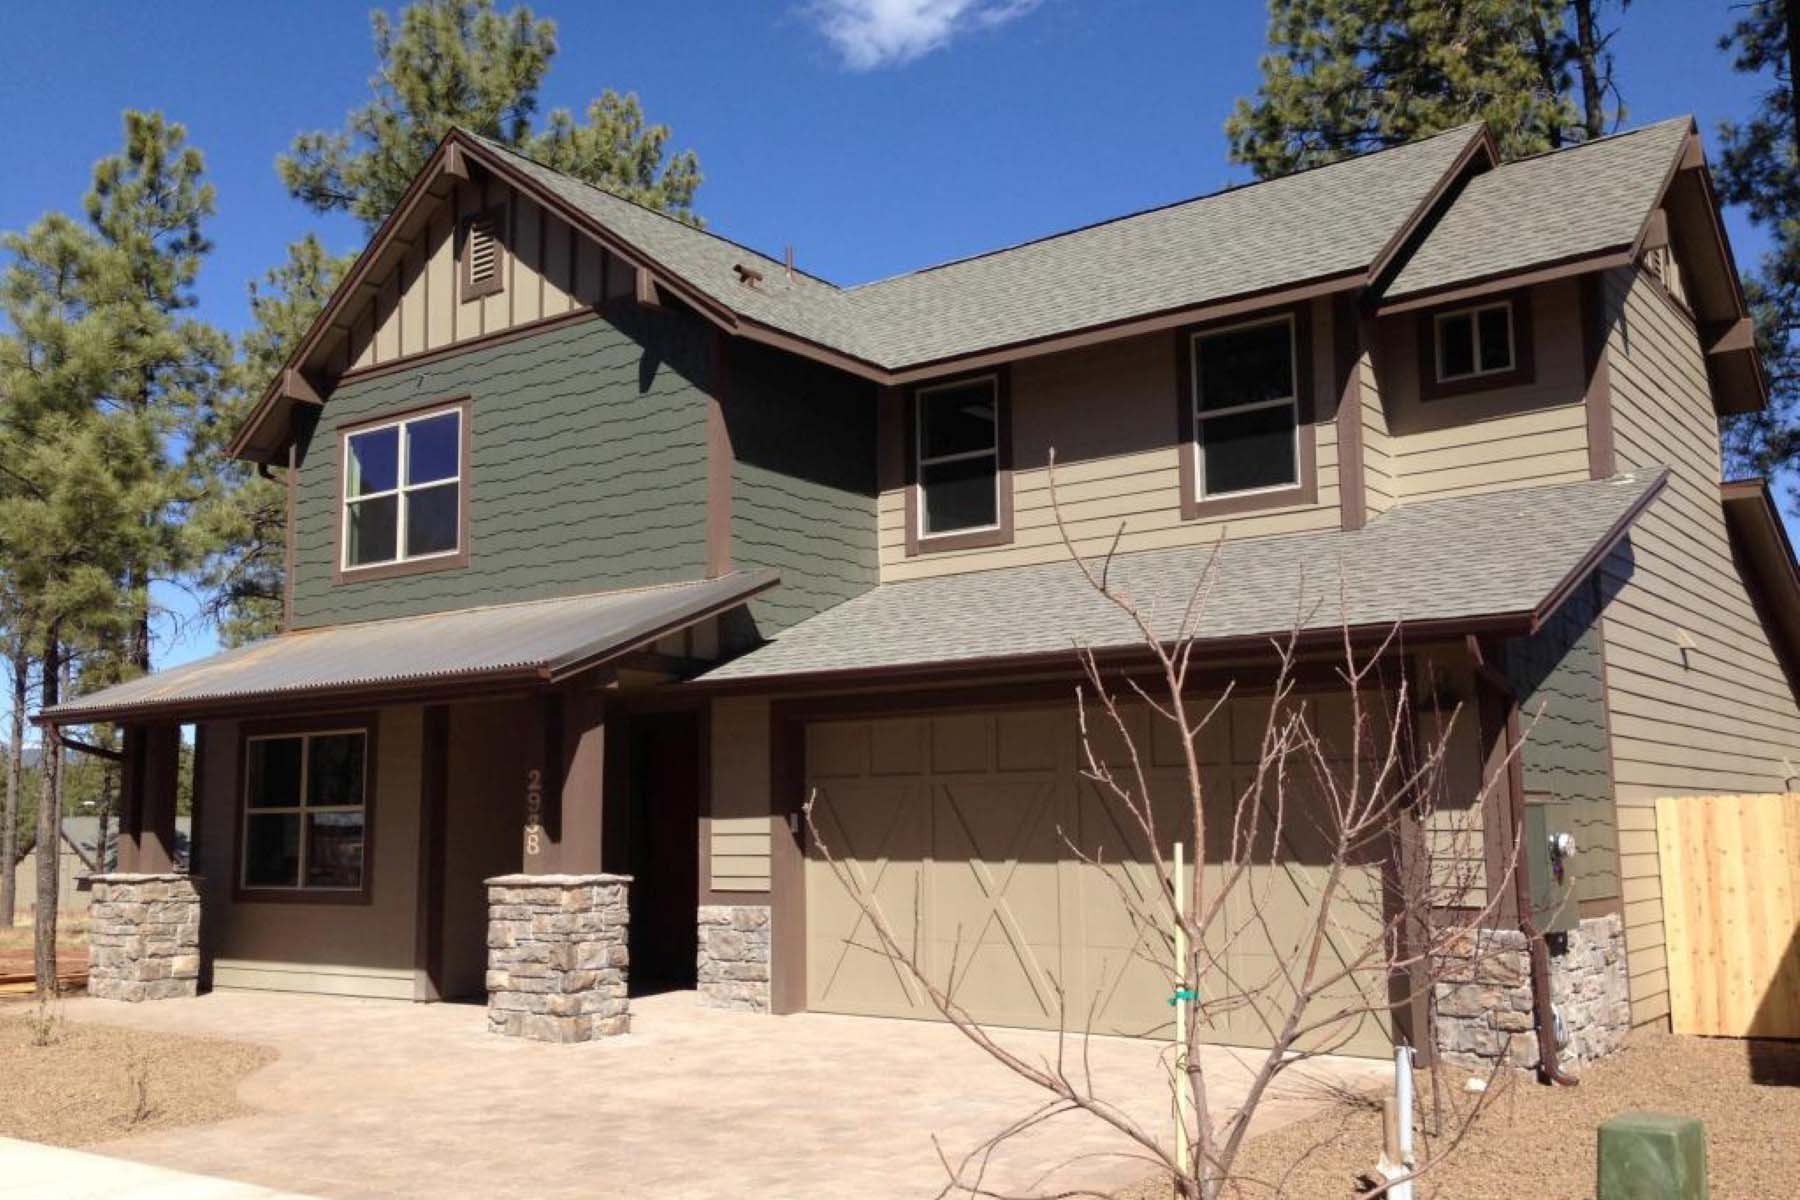 Single Family Home for Sale at Quality construction built by Miramonte Homes. 1667 Plan B Miramonte Homes Presidio Flagstaff, Arizona 86001 United States